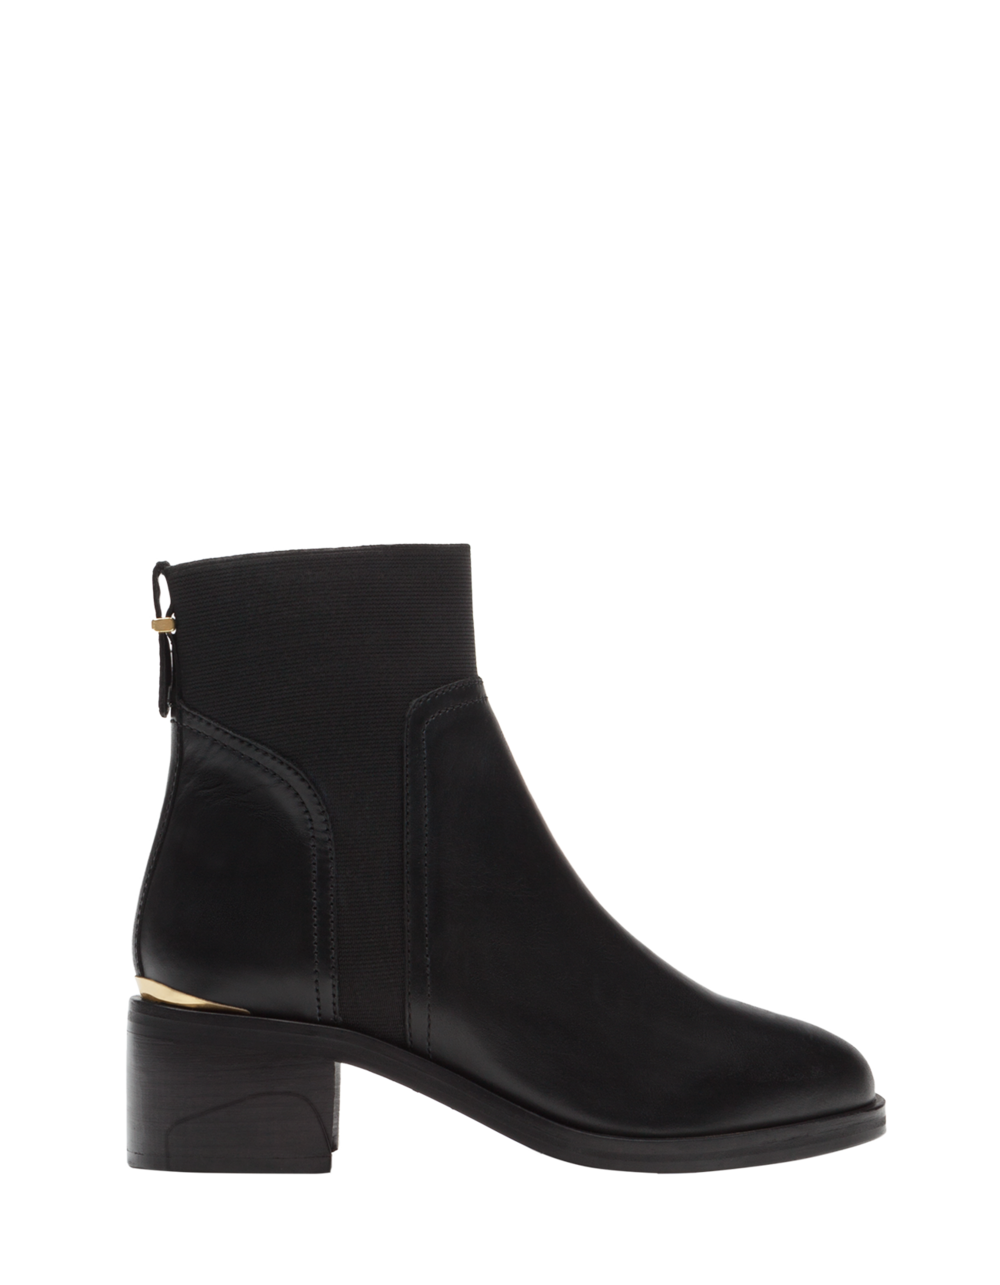 Stradivarius_fw15_shoes (9).png